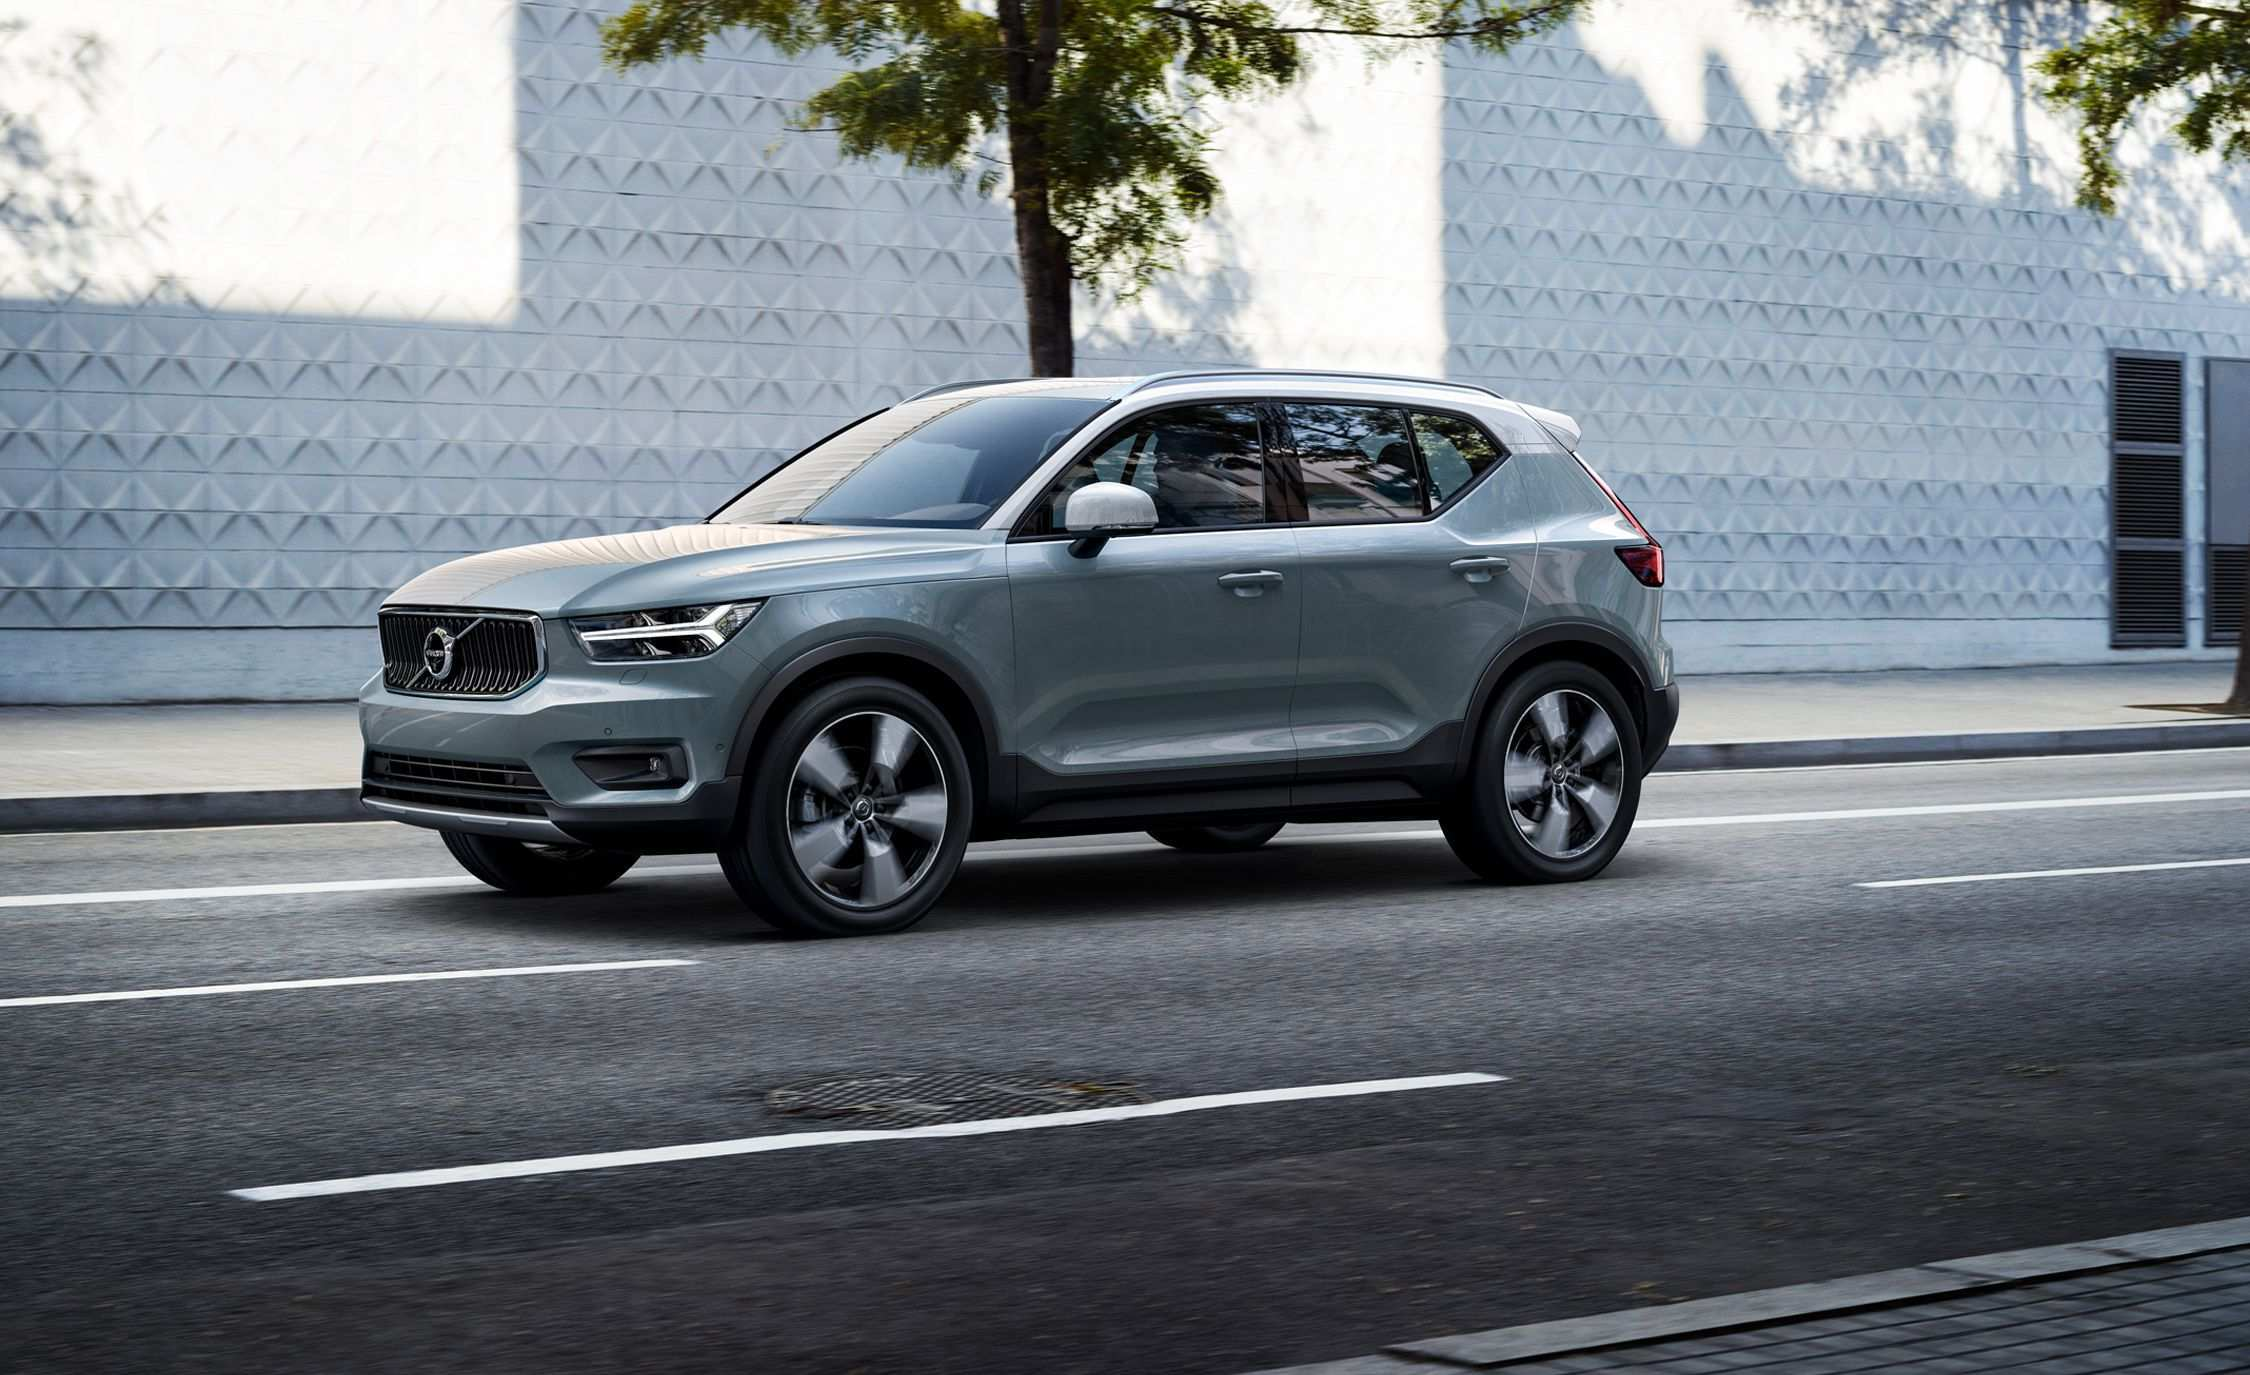 29 New 2019 Volvo Xc40 Length Concept by 2019 Volvo Xc40 Length